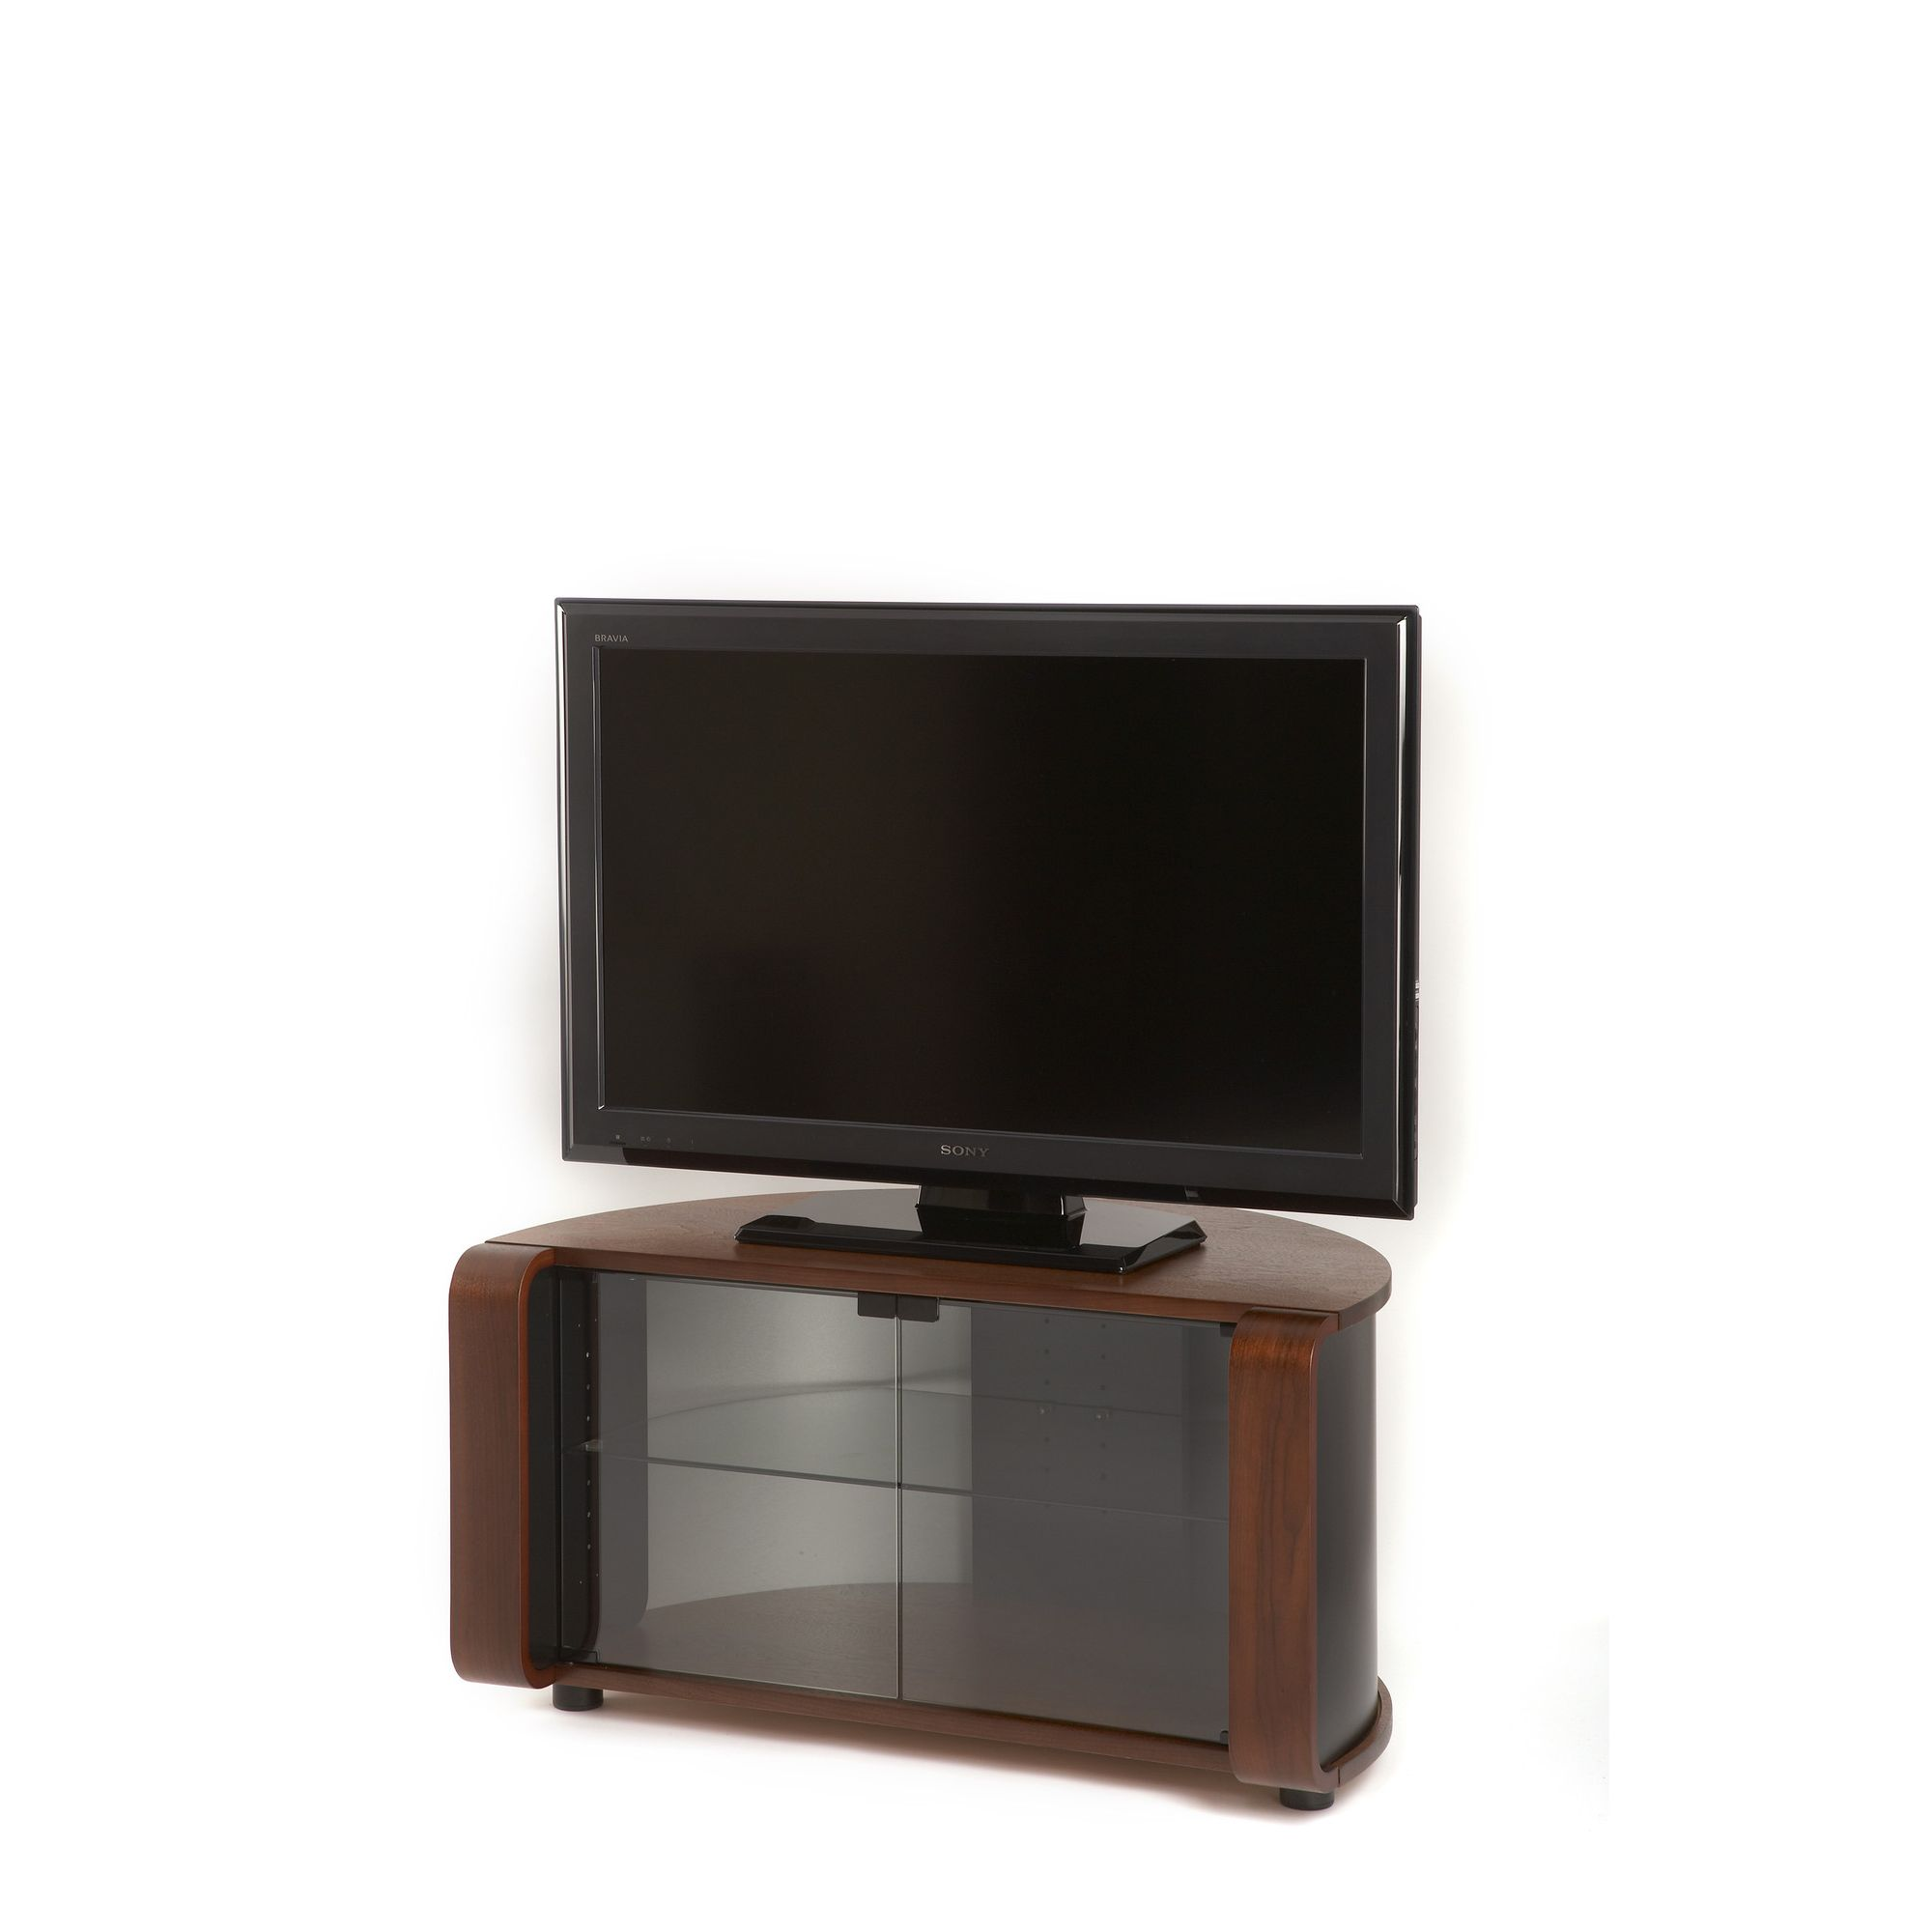 Off The Wall ProfileTV Stand - Walnut Veneer at Tescos Direct